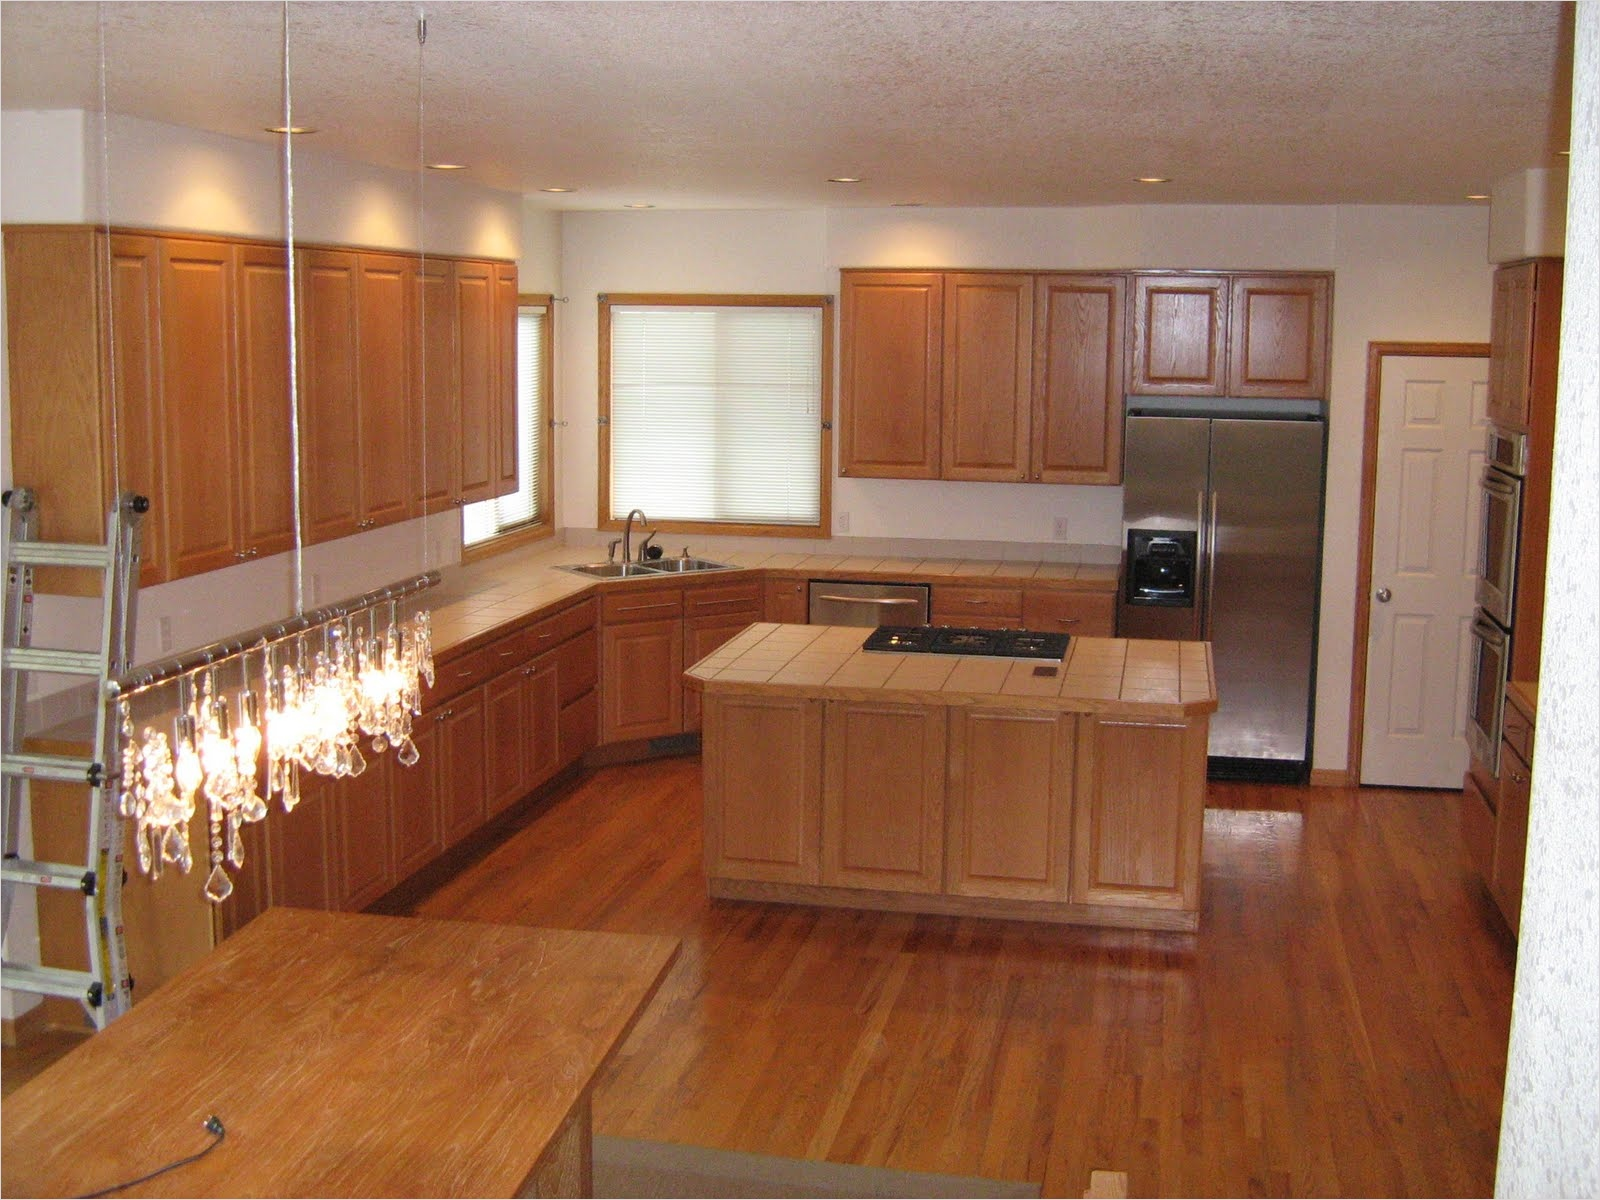 Kitchen with Maple Cabinets Color Ideas 43 Kitchen Popular Paint Colors for Kitchens Home Trends Kitchen Wall Color Ideas with Cream 3